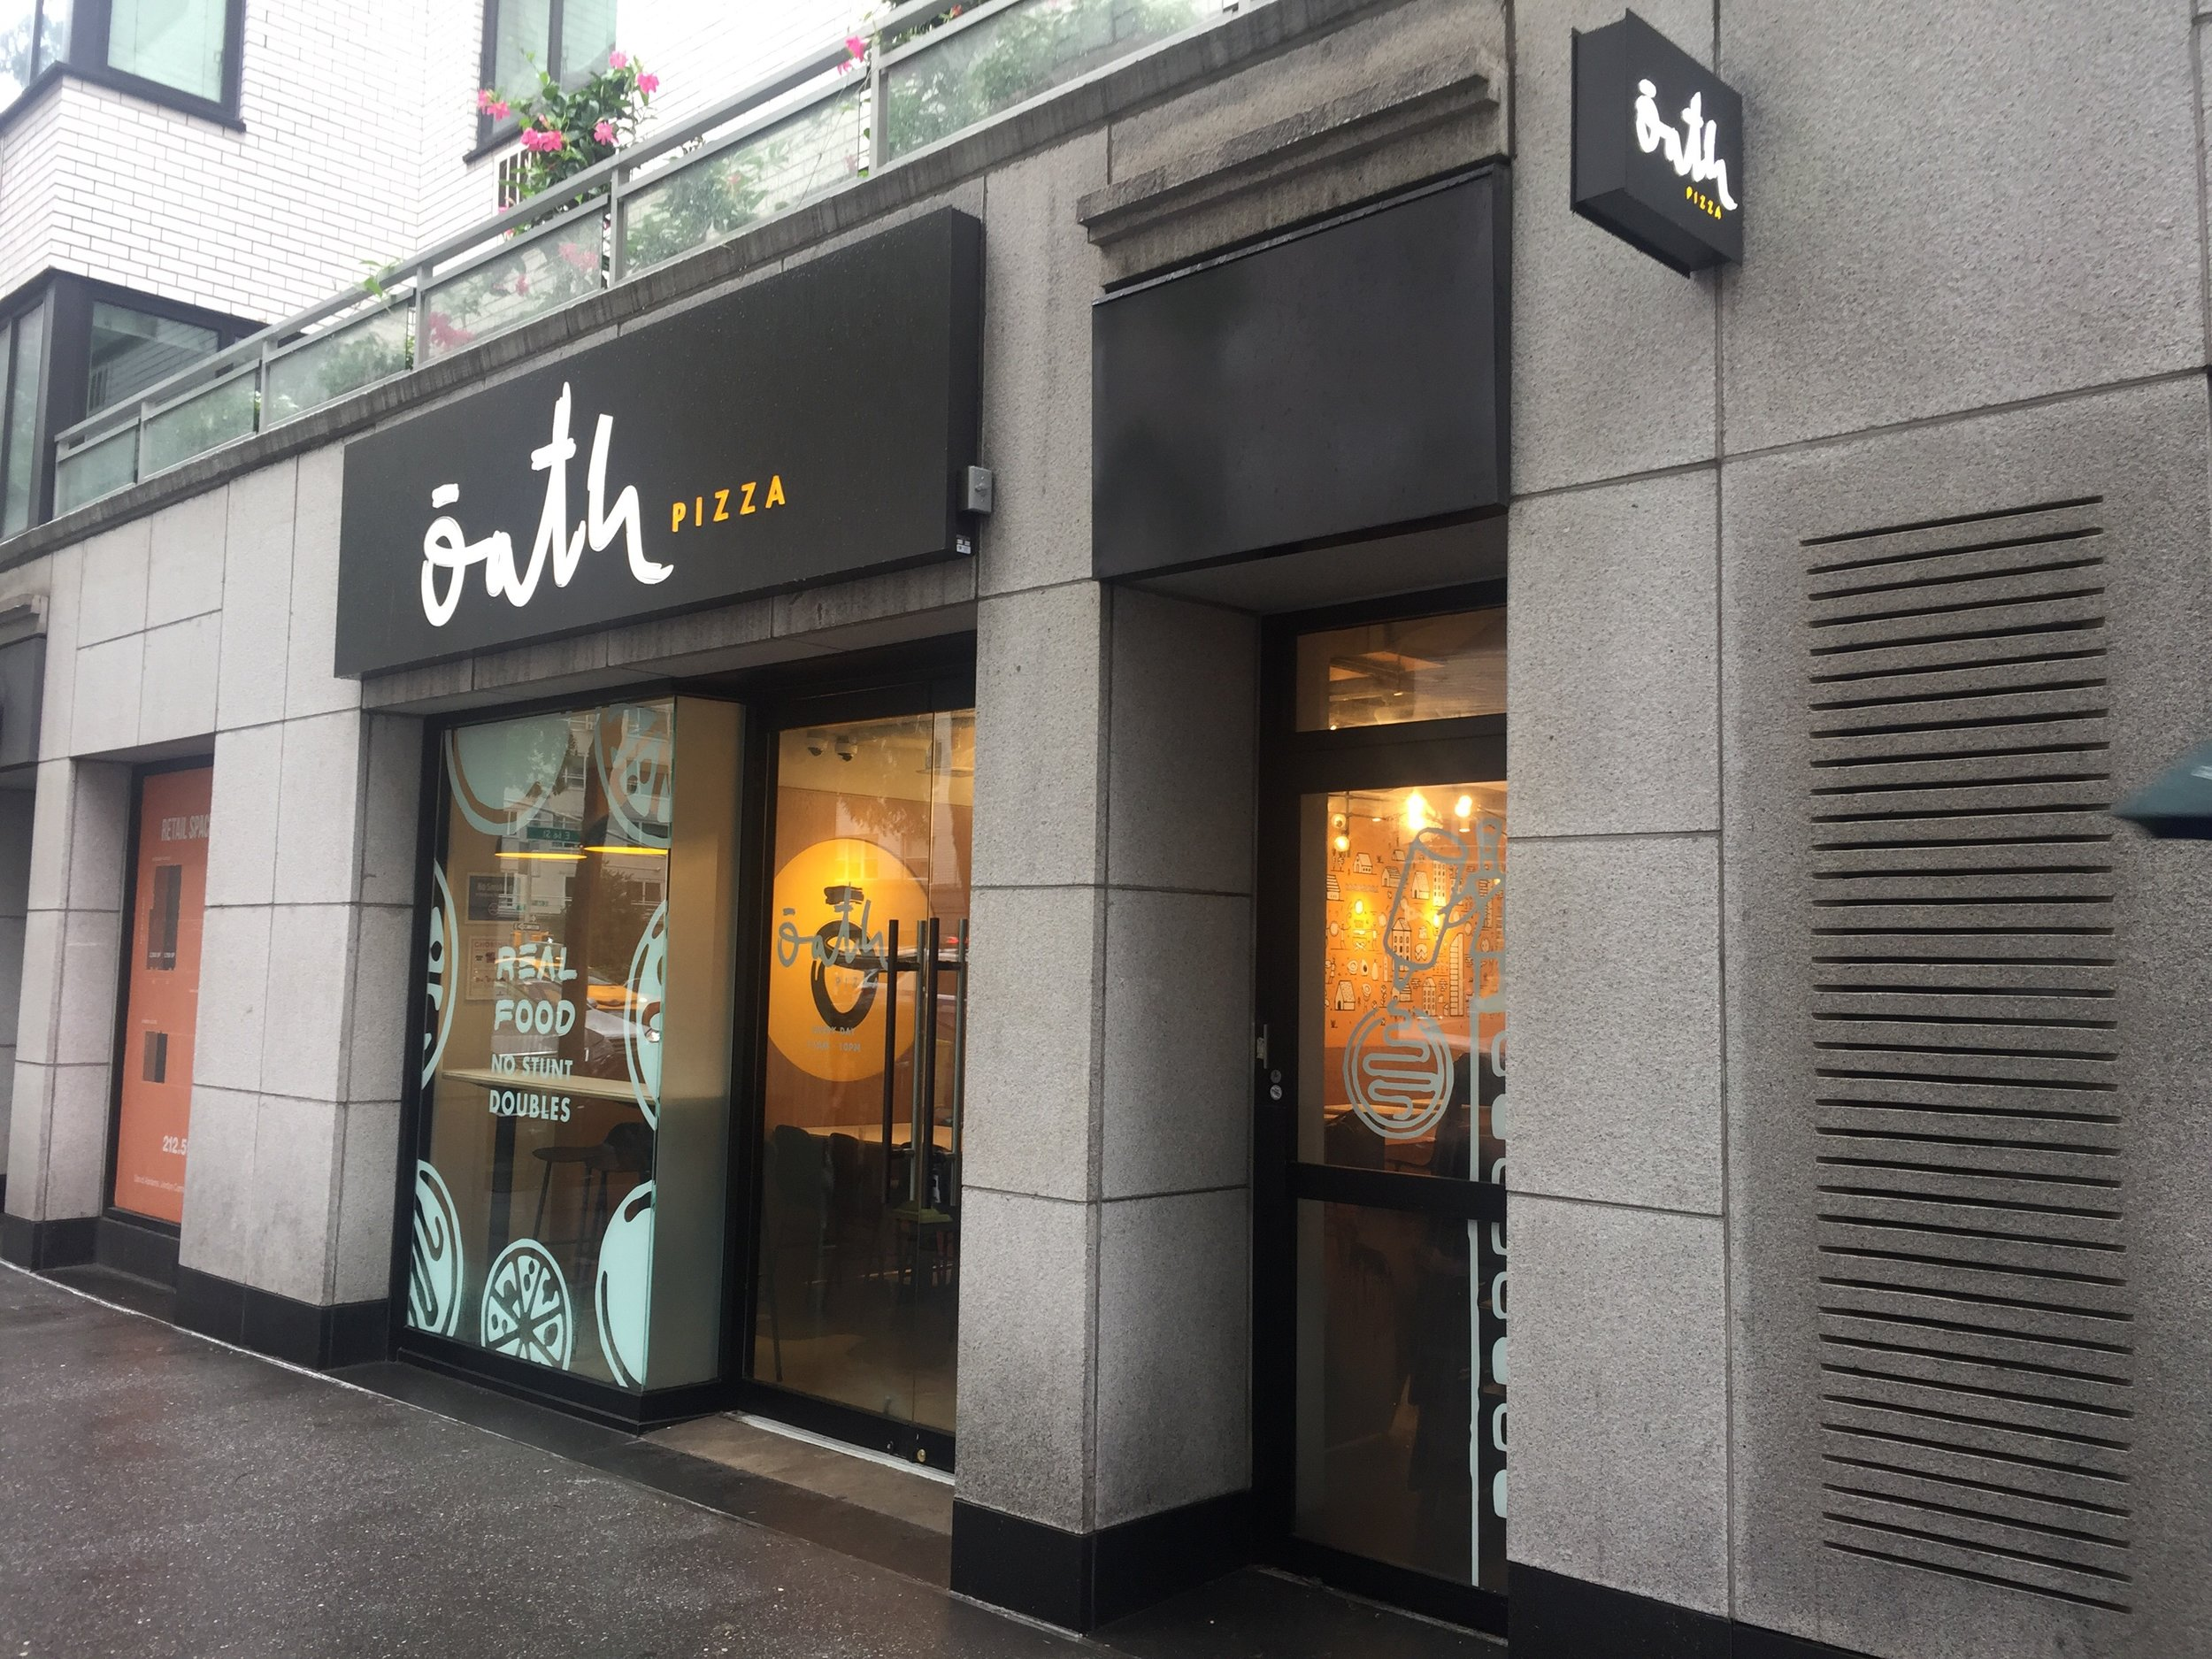 Oath Pizza    1140 3rd Ave. New York, NY 10065    2169 Broadway, New York, NY 10024